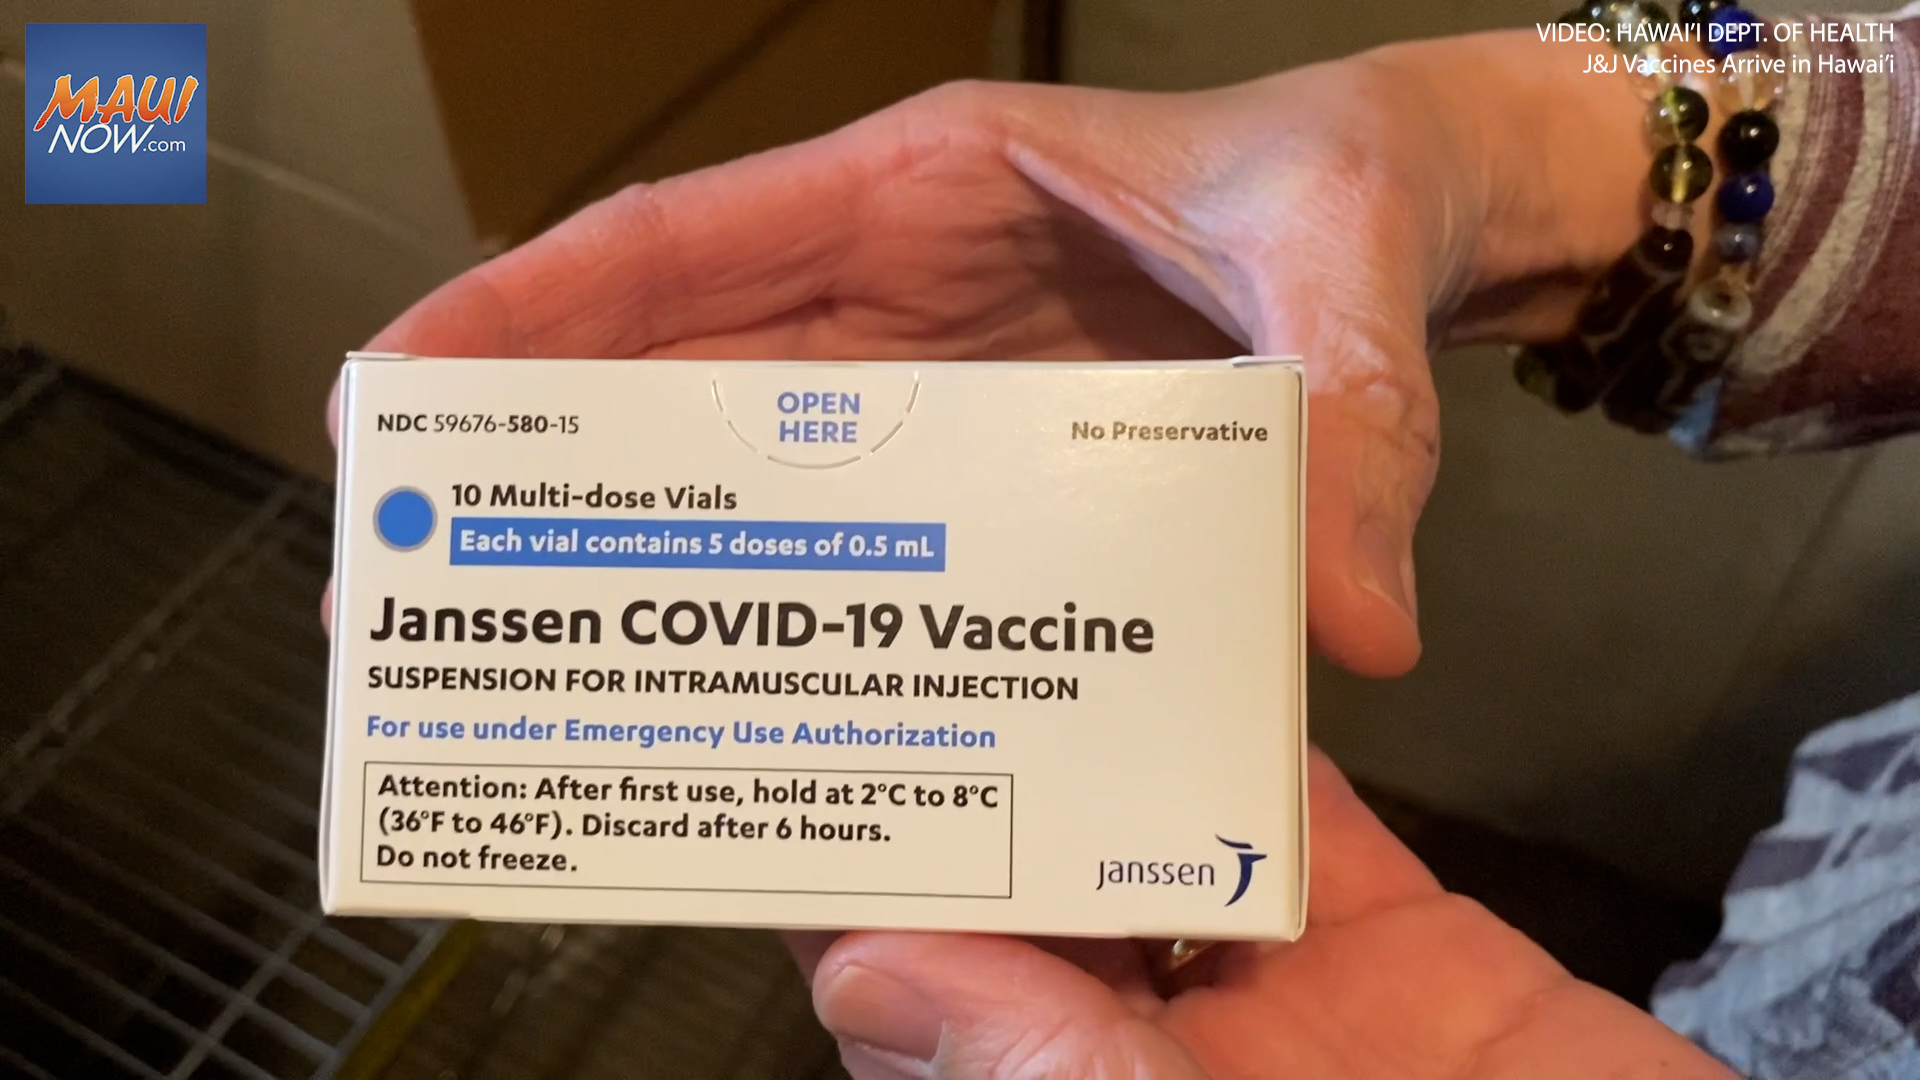 J&J Vaccine Clinics This Week on Maui